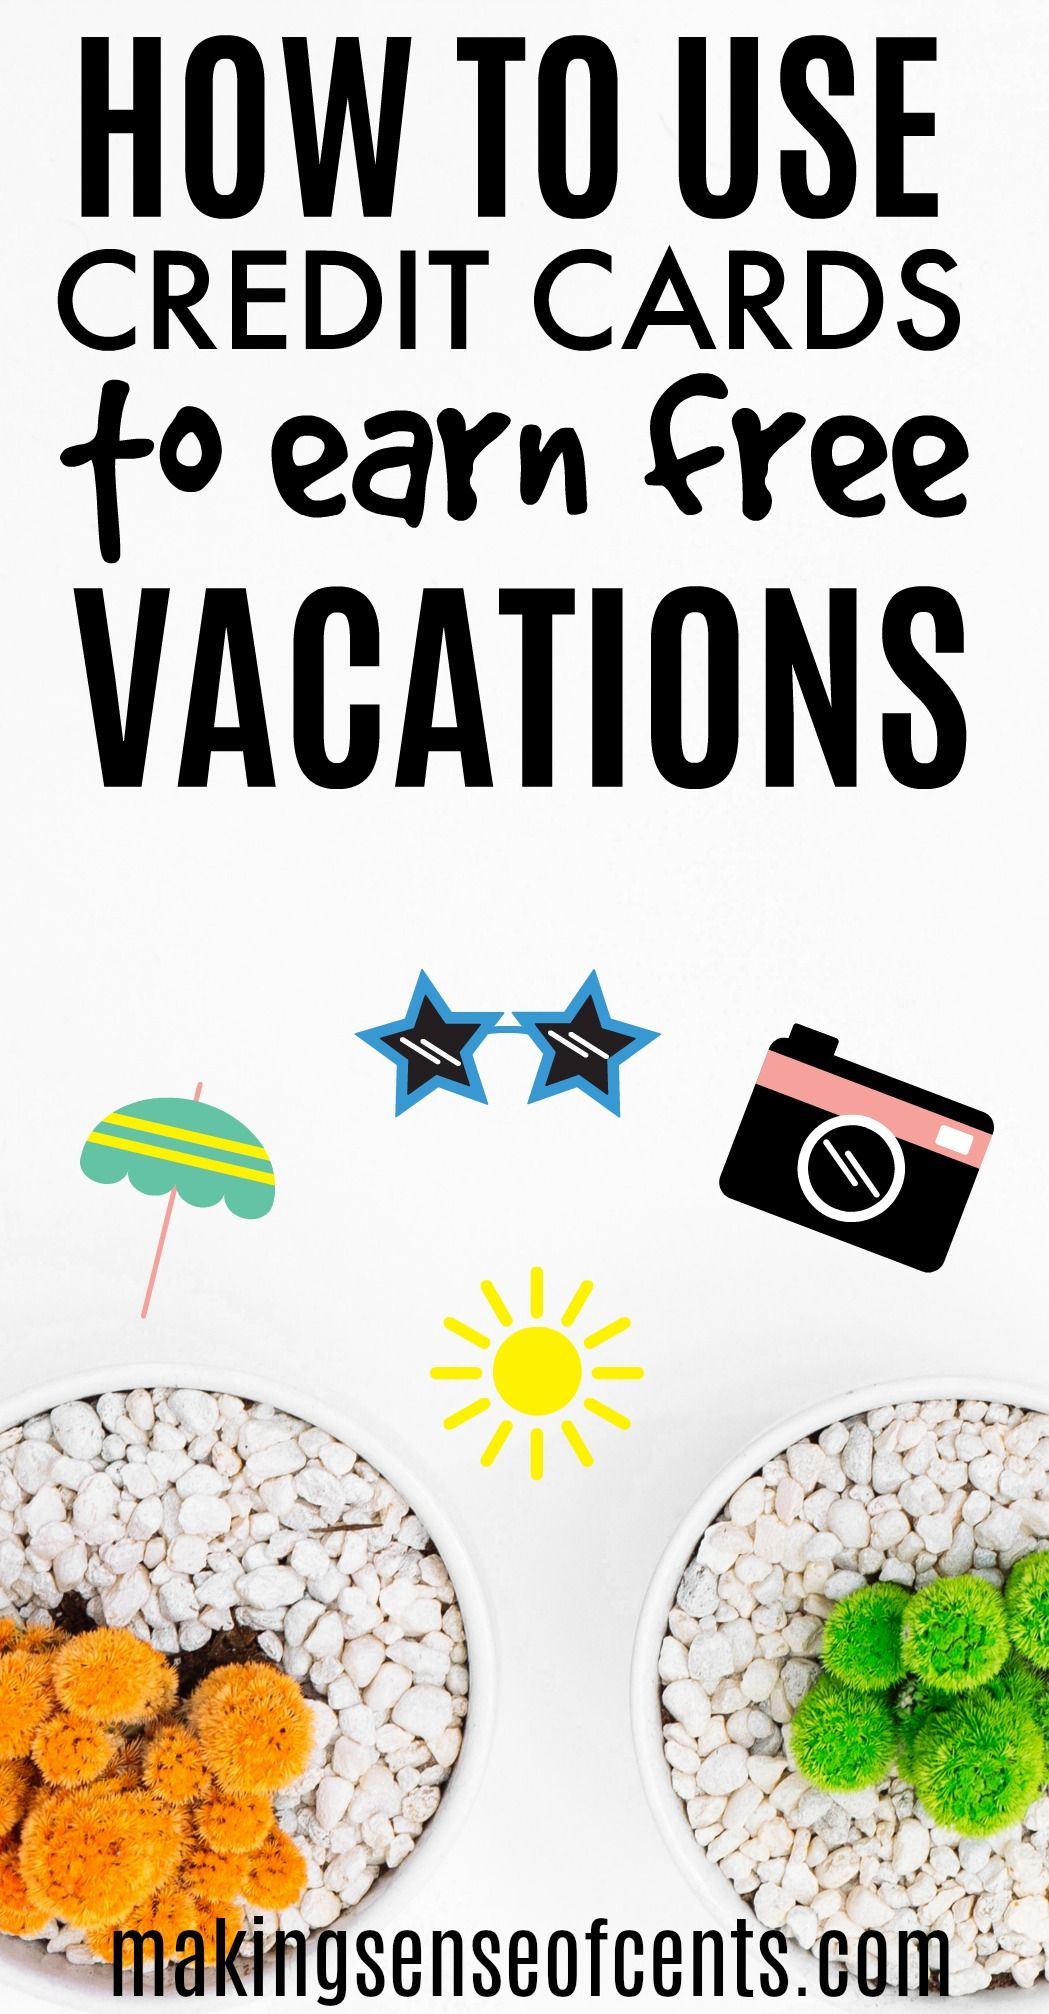 How To Use Credit Cards To Earn Cheap/Free Vacations